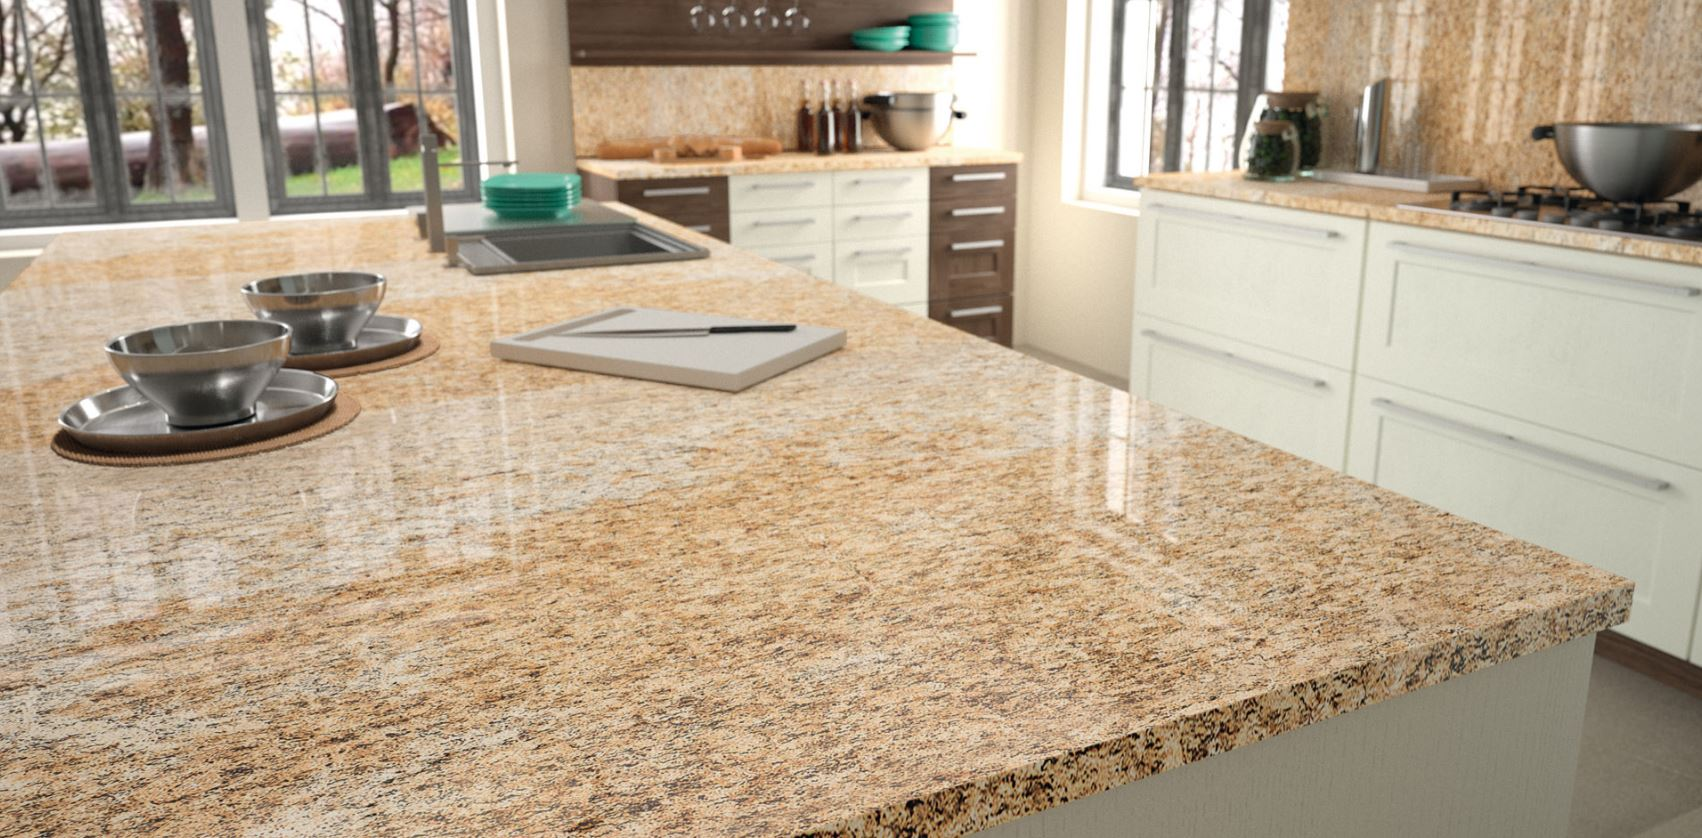 Unique granite slabs. Granite countertops available at Lumberjack's Kitchens and Baths.